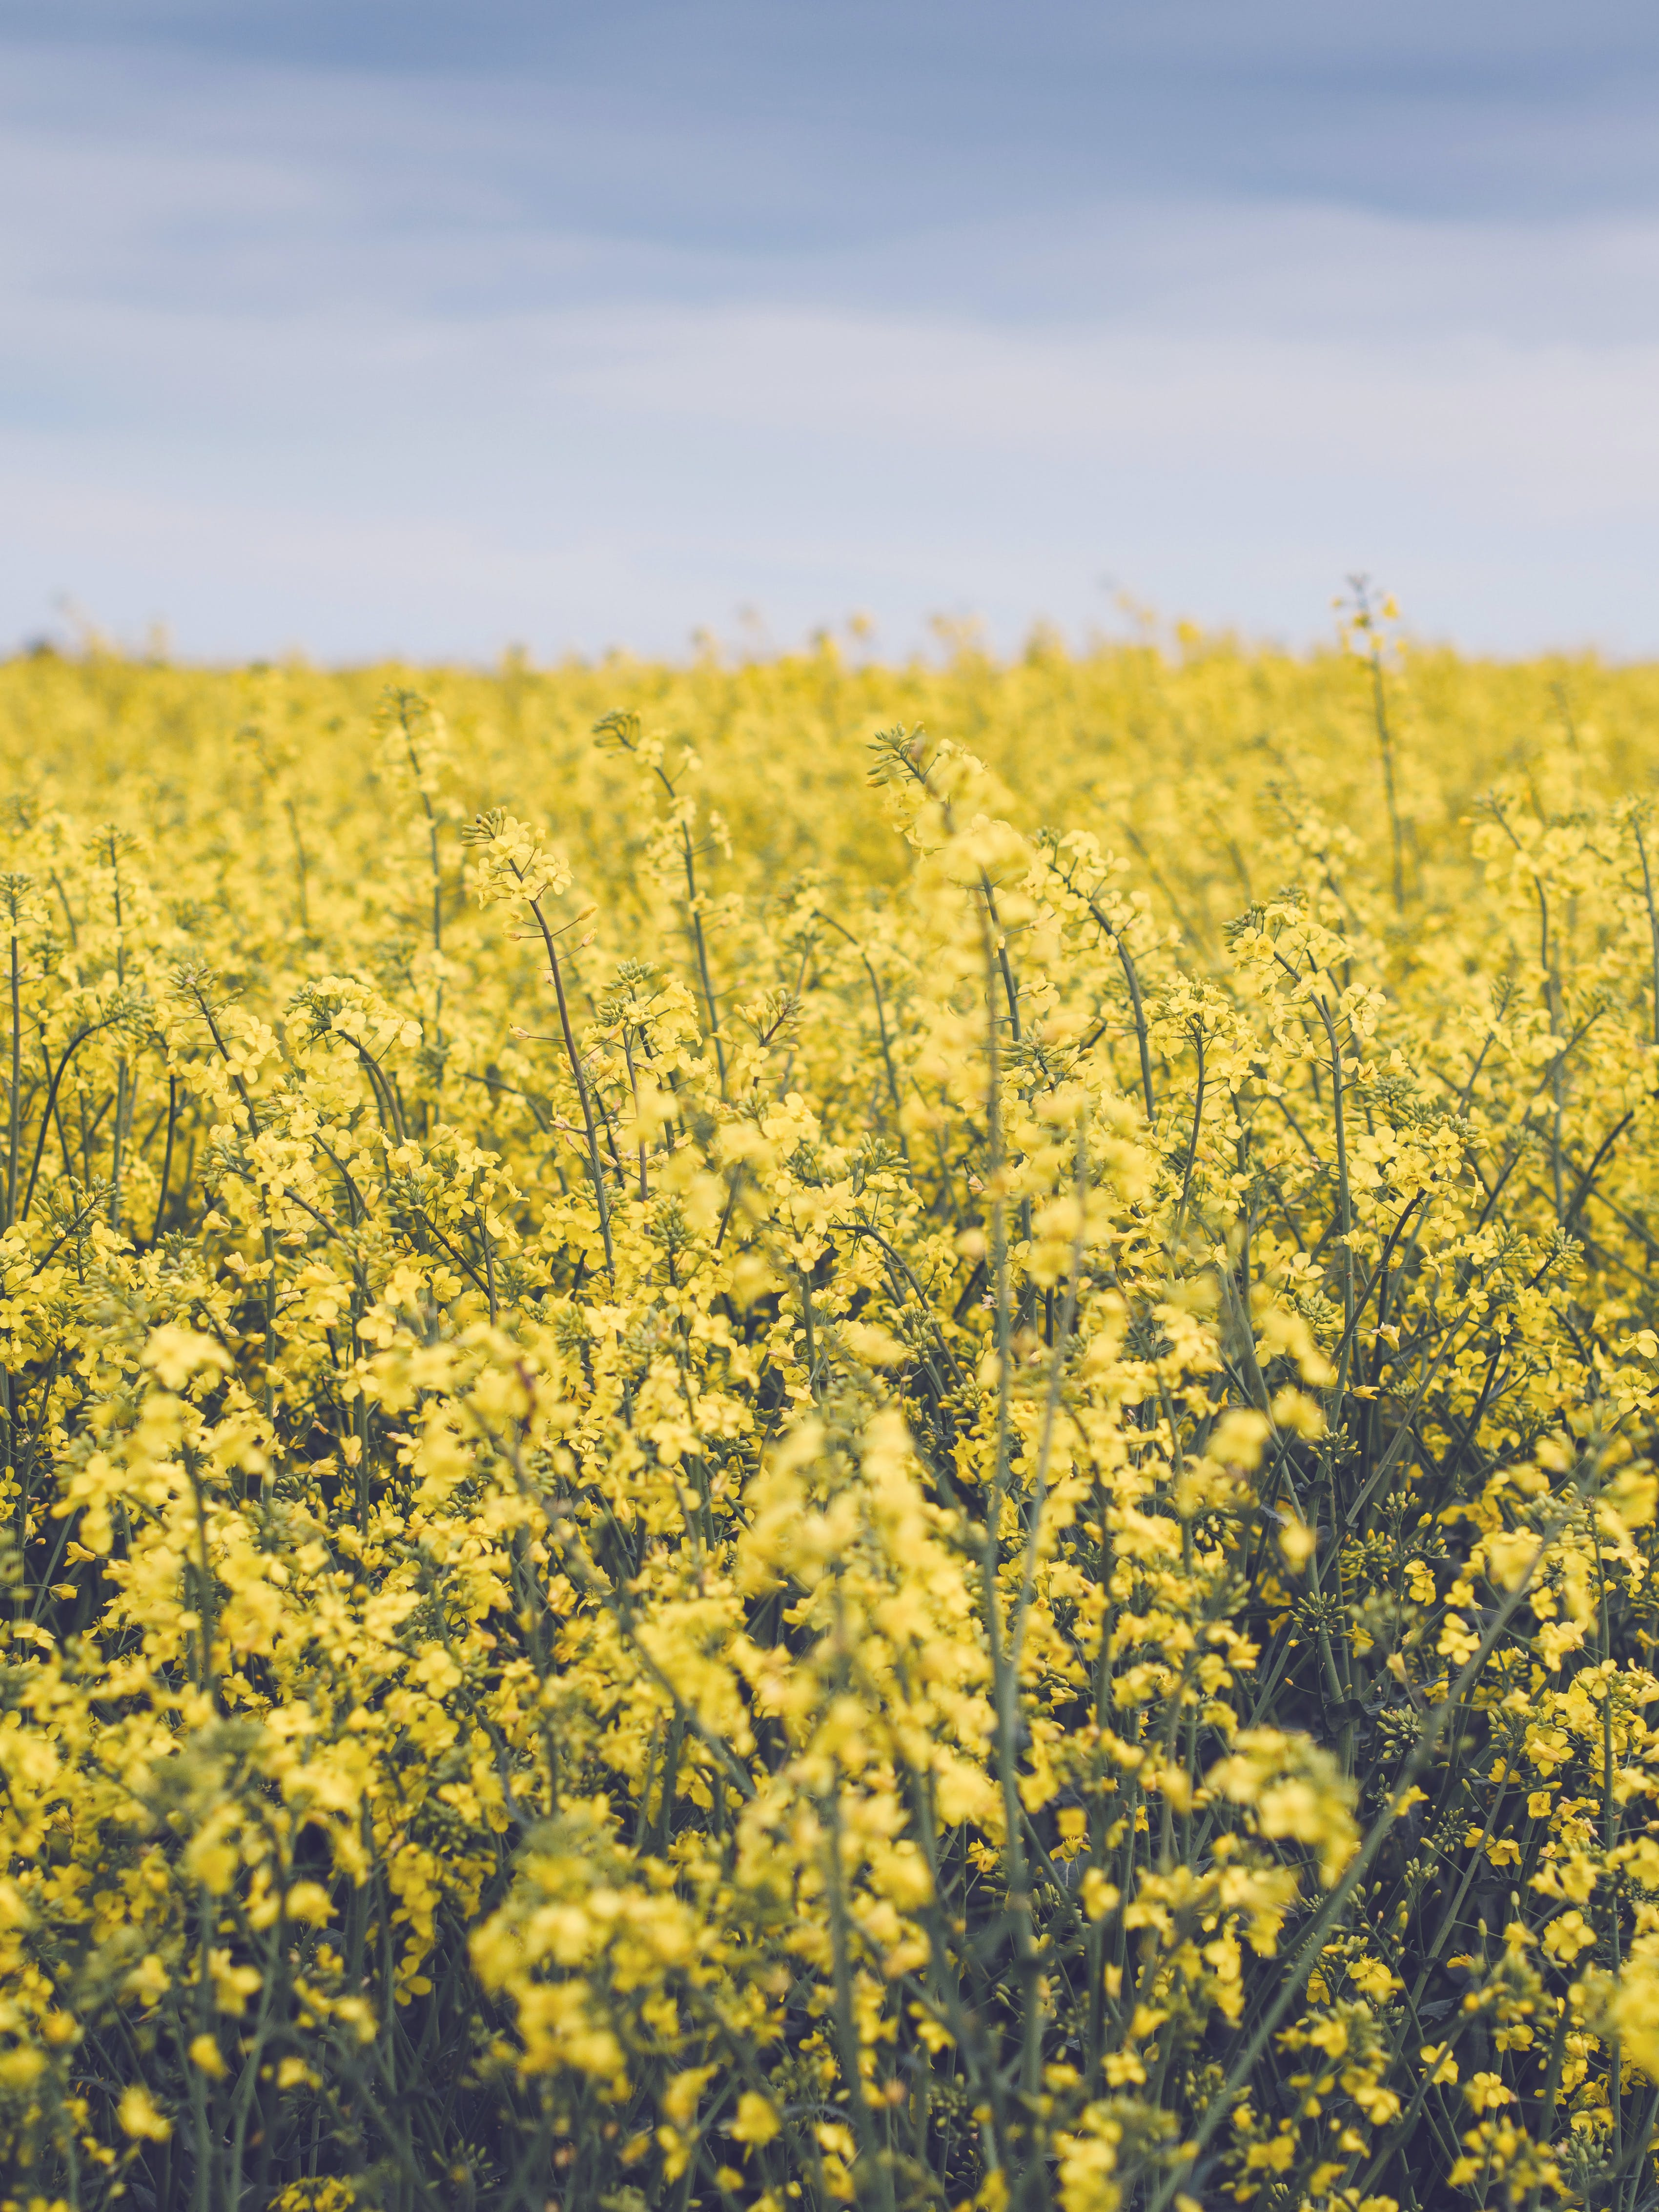 Free stock photo of field, flowers, yellow, plants